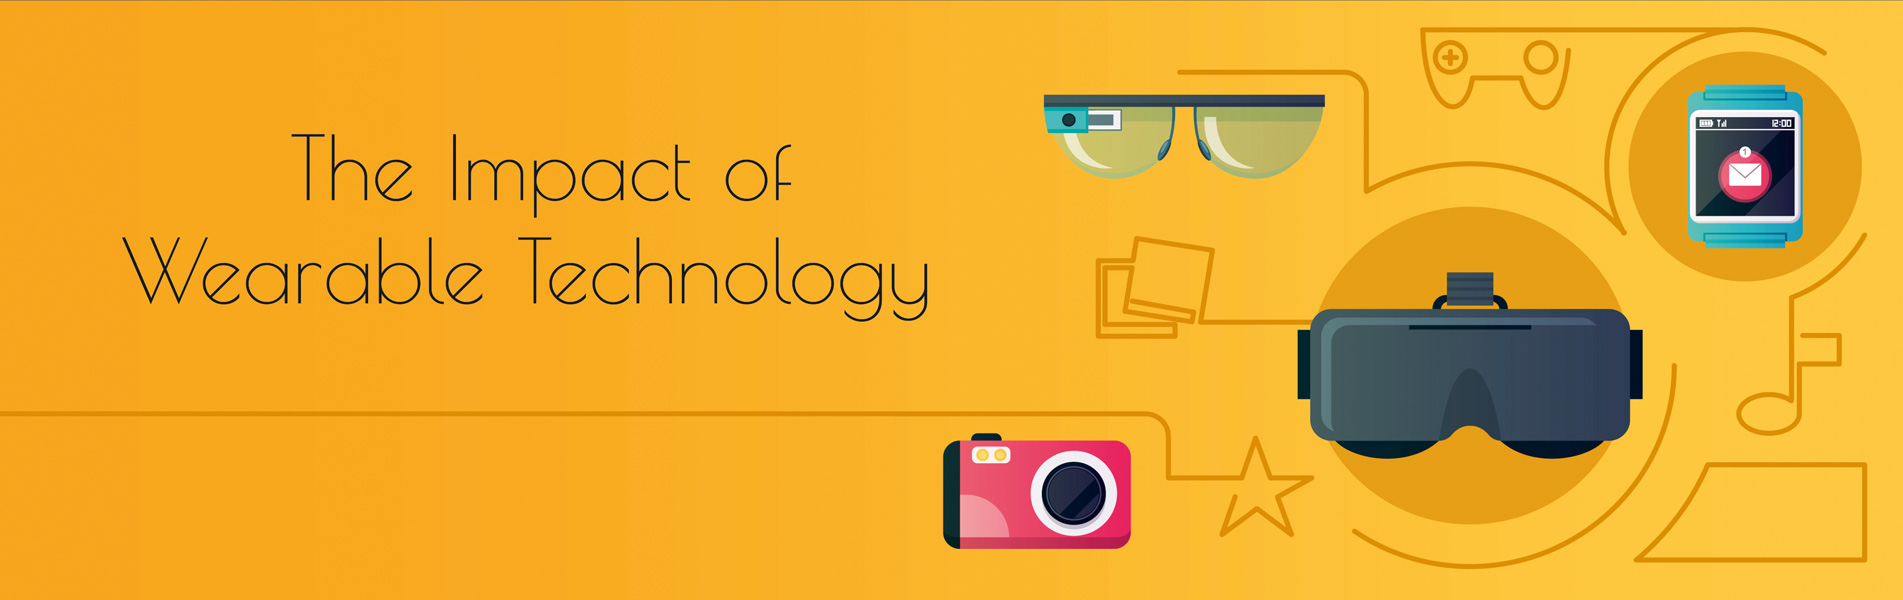 The-Impact-Of-Wearable-Technology